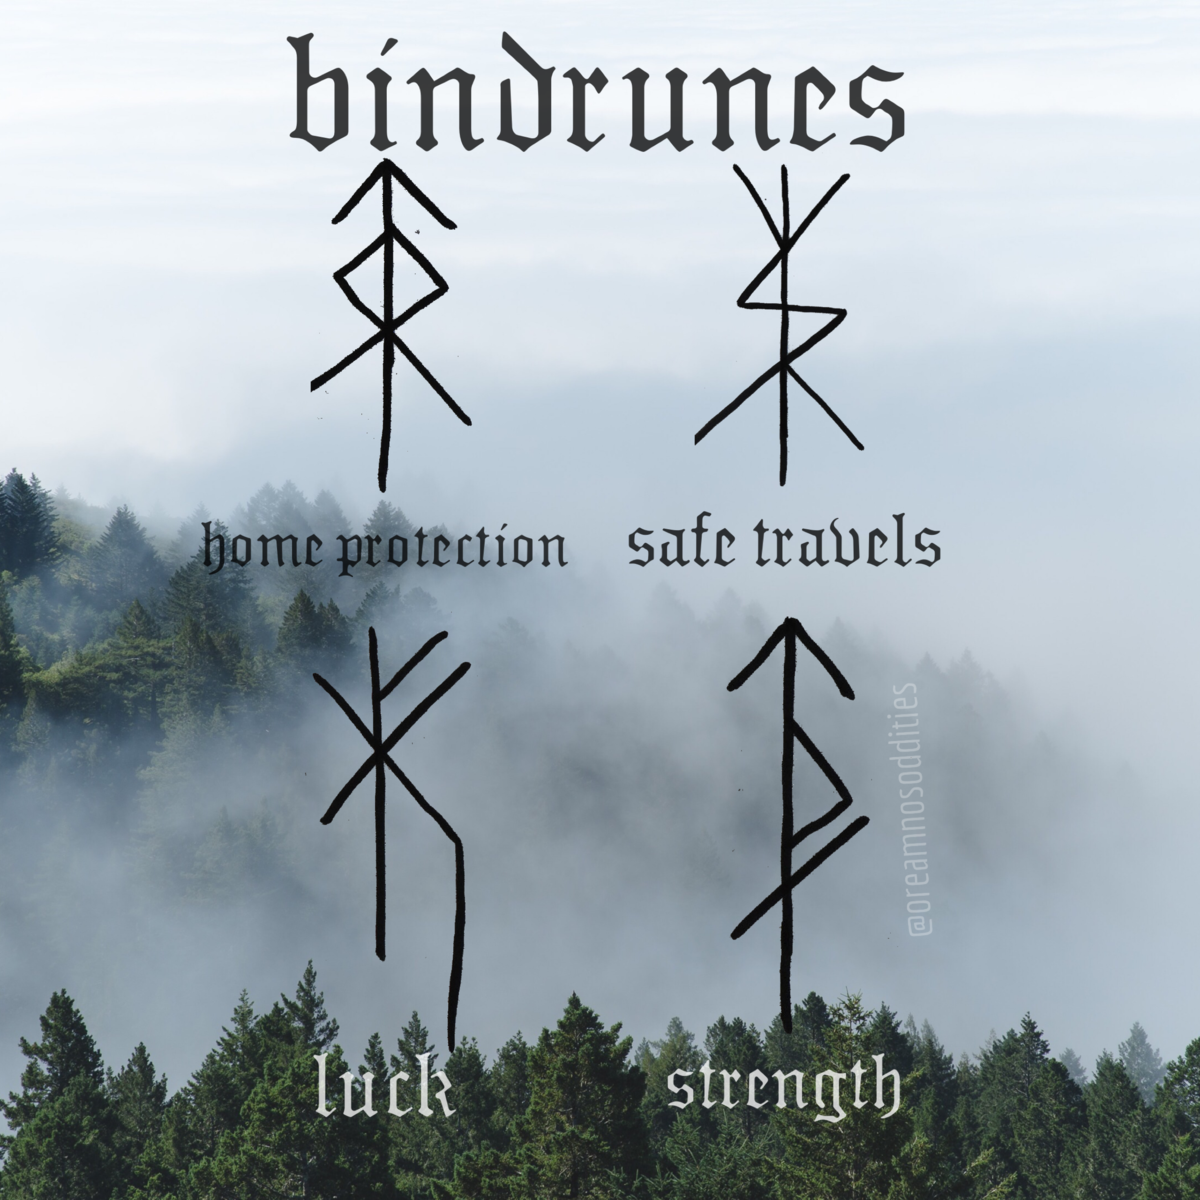 How to make a bindrune Bindrunes can be used for anything in life you're looking to receive help with. Saving money, protecting your home, finding love or a new job. Whatever intent you have, a bindrune can exist for it. The materials you use will vary depending on how long you need the bindrune. For a one time ritual you can use paper or wood. For an extended use you can use wood, antler, clay or leather. For more permanent use, metal or rock. There's many other materials you can use but thes